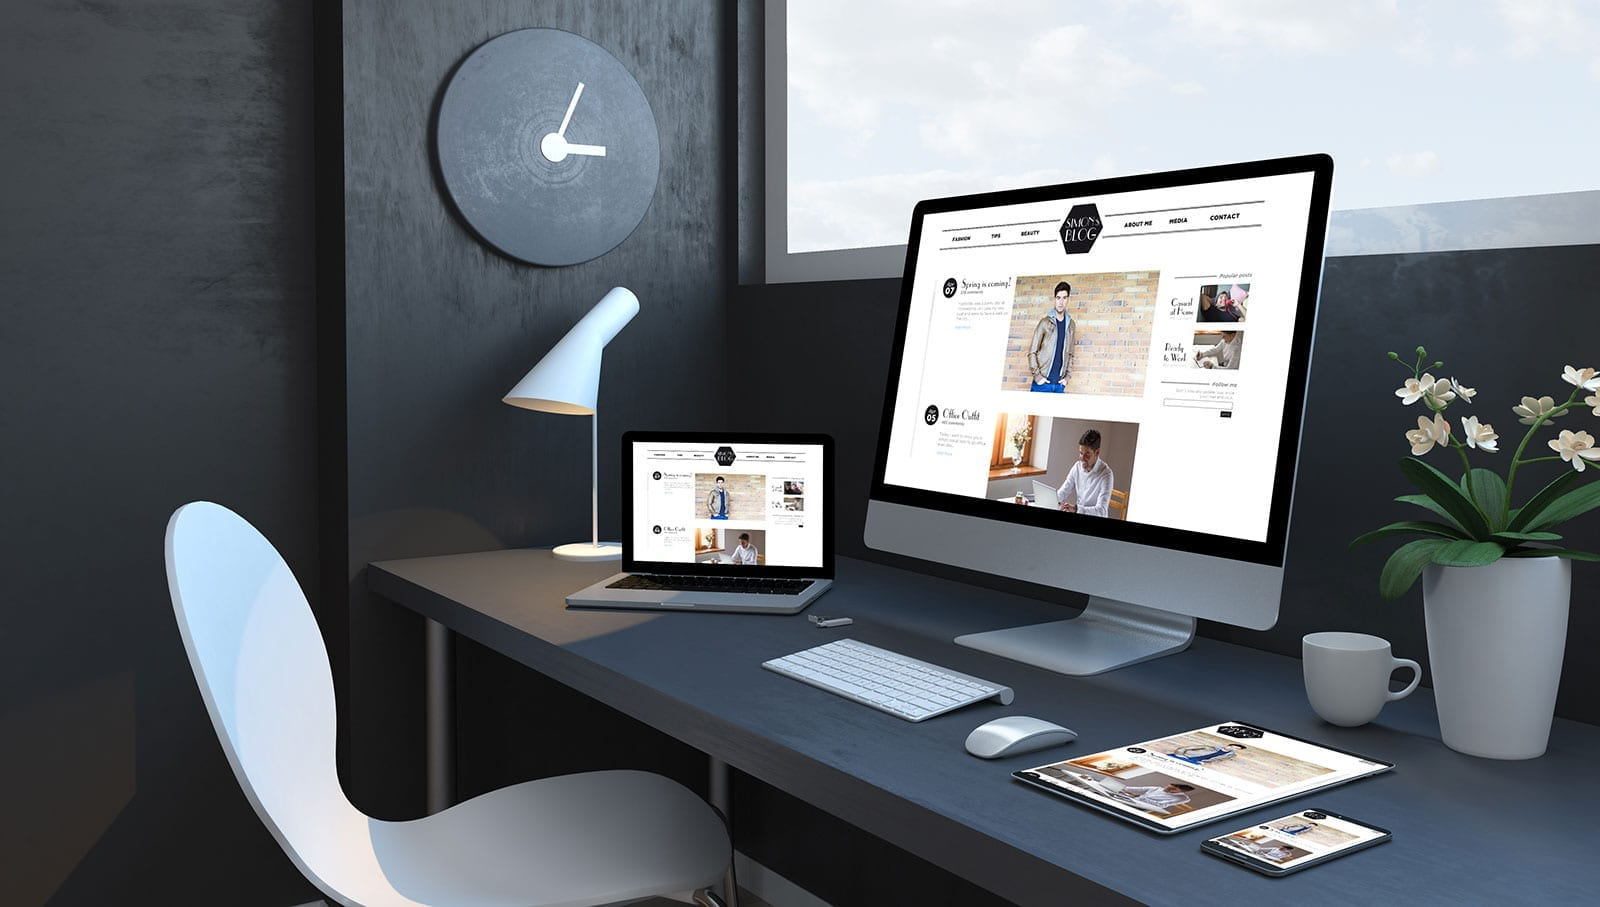 Modern workspace with Mac and Apple devices